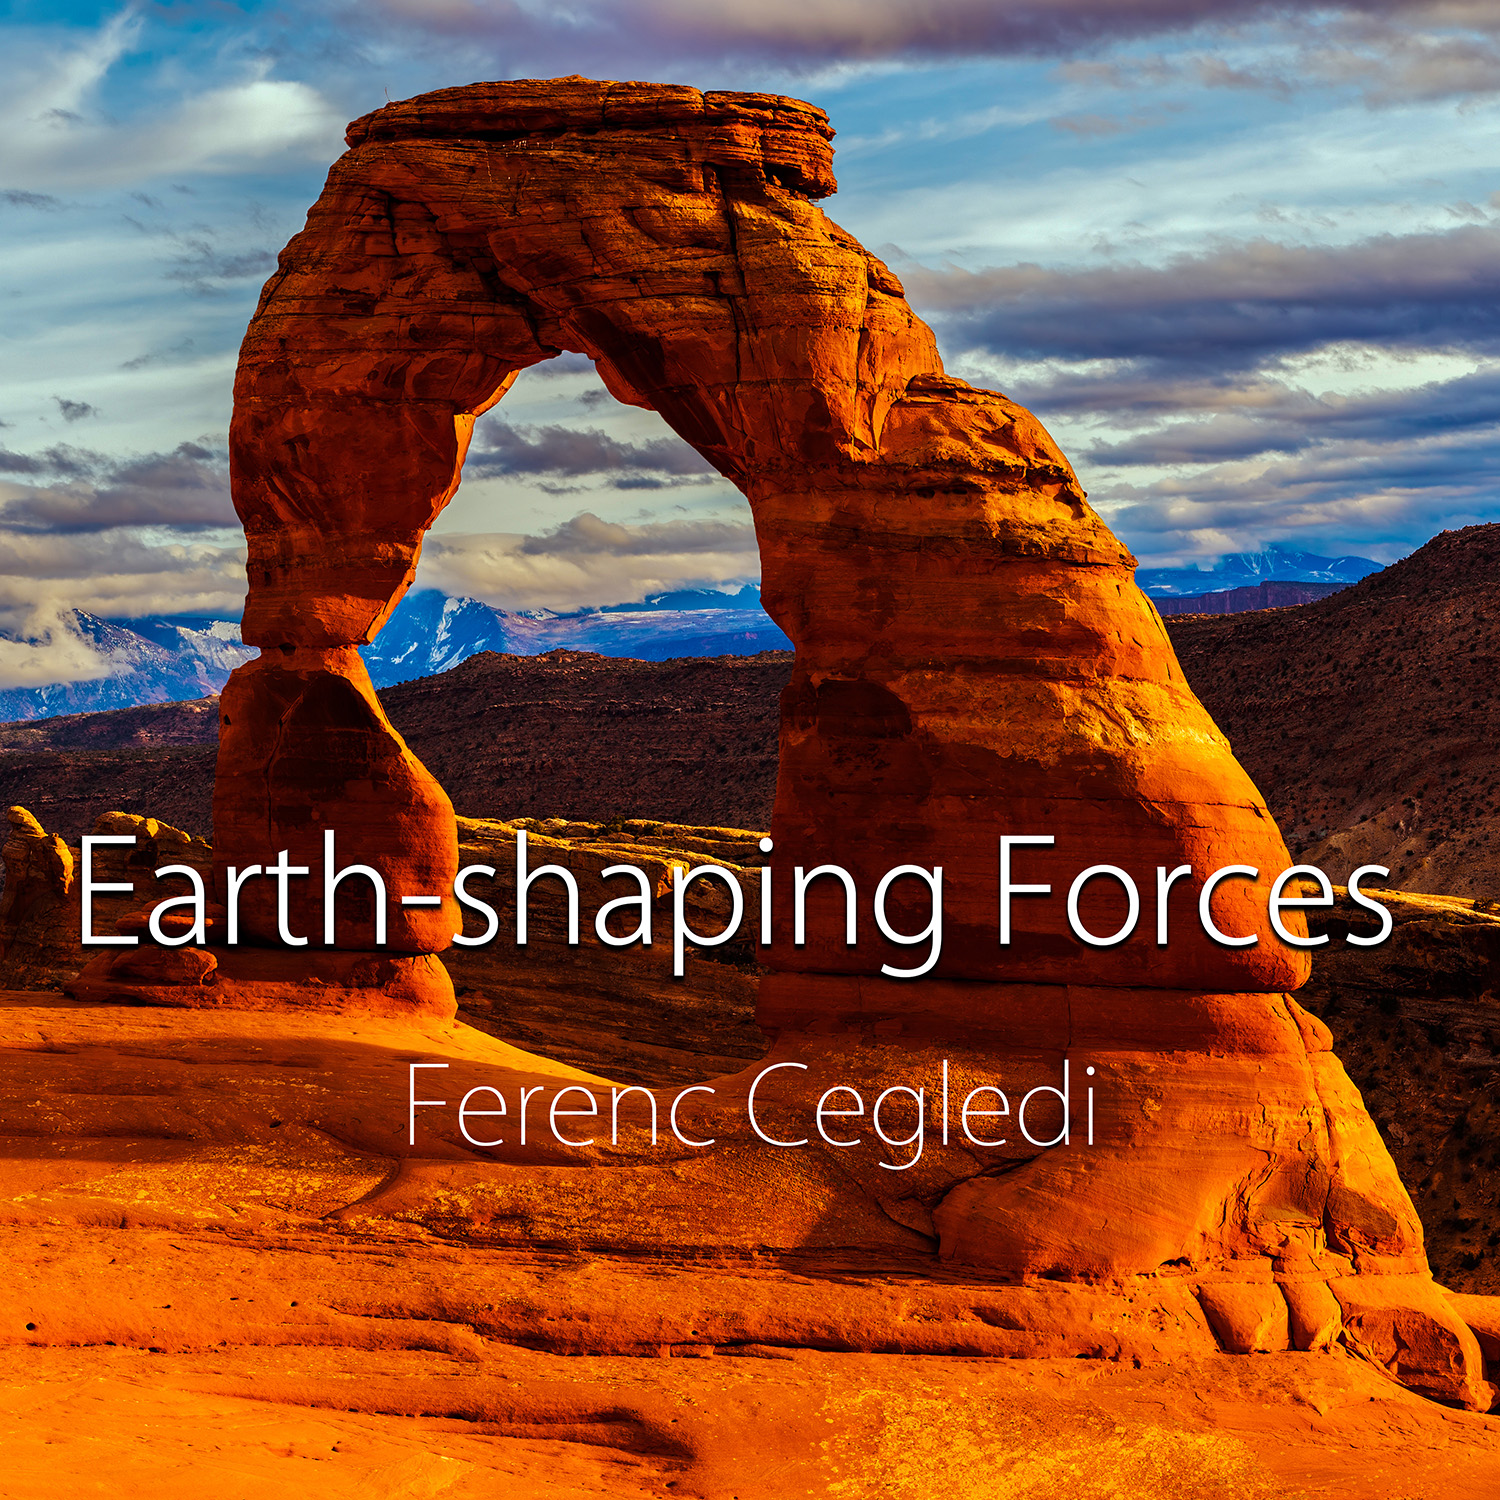 The coffee-table book, Earth-shaping Forces by Ferenc Cegledi